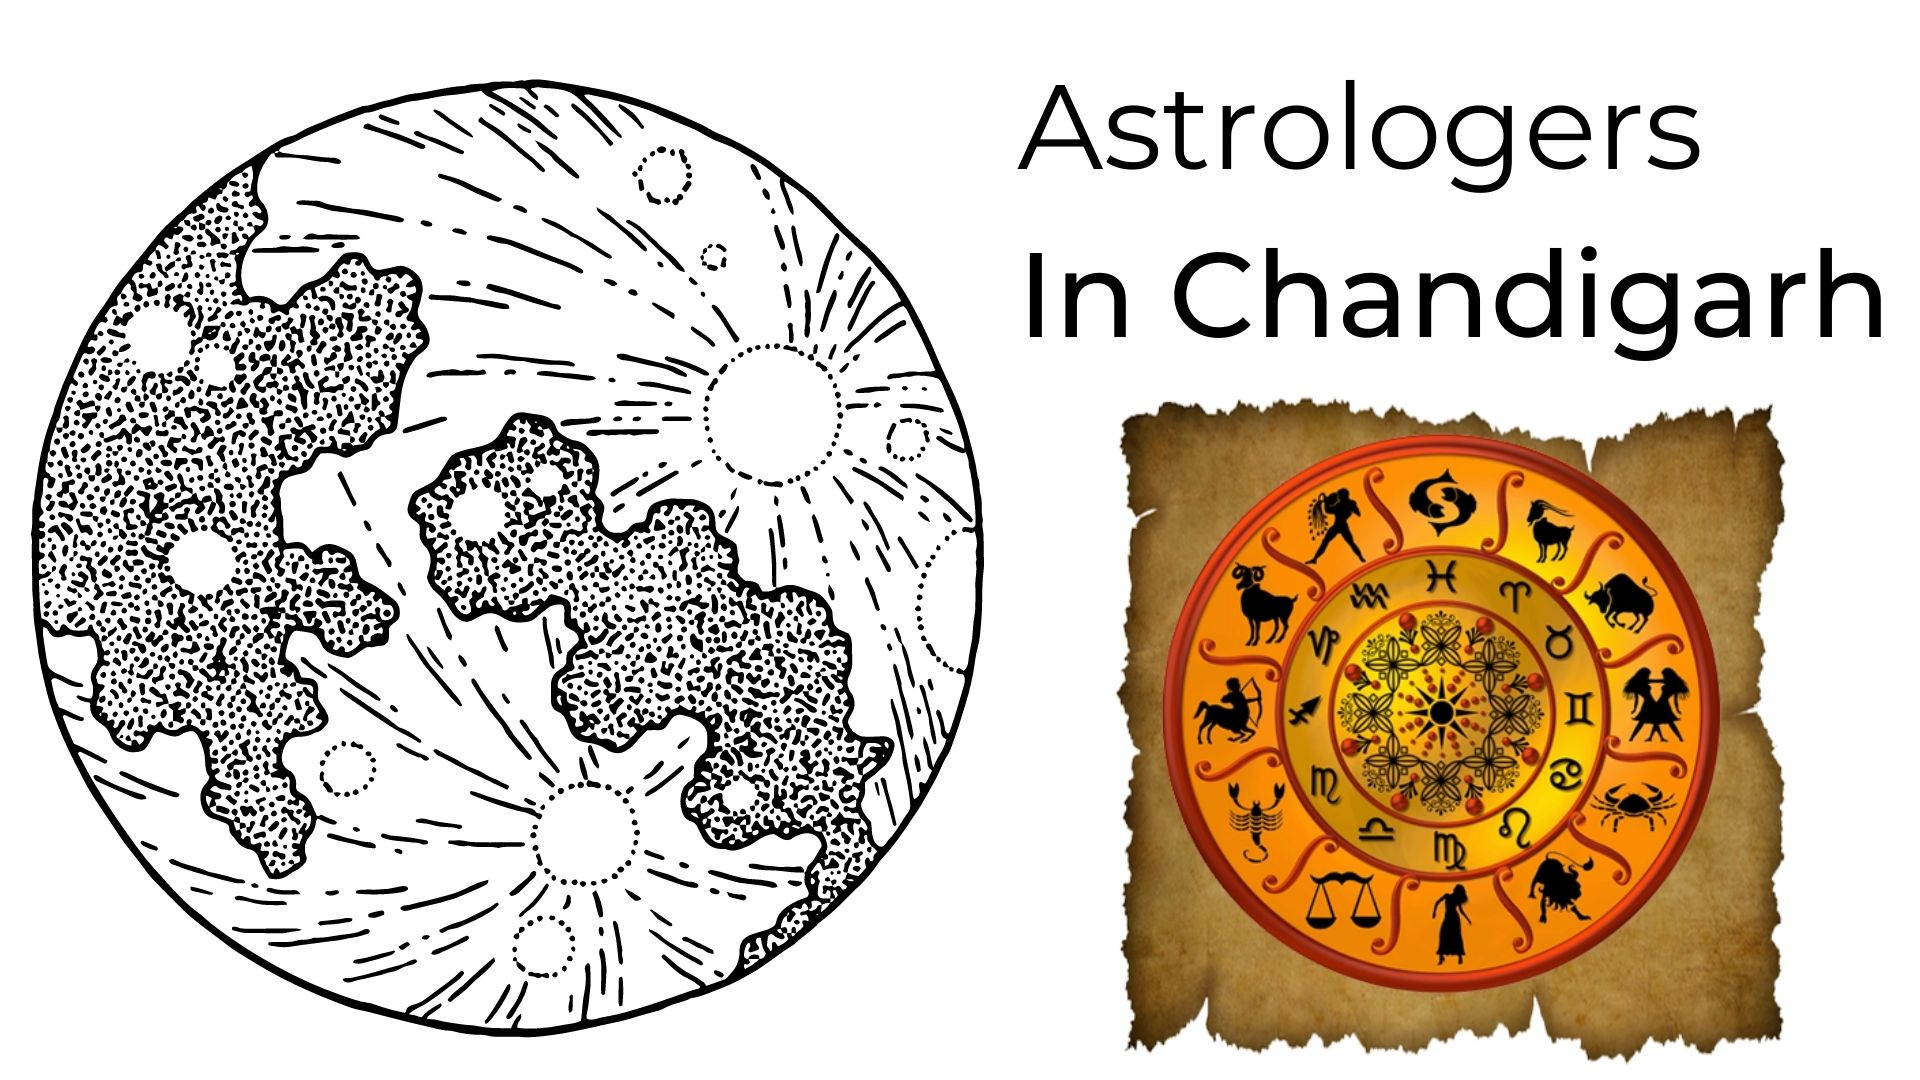 Astrologers In Chandigarh